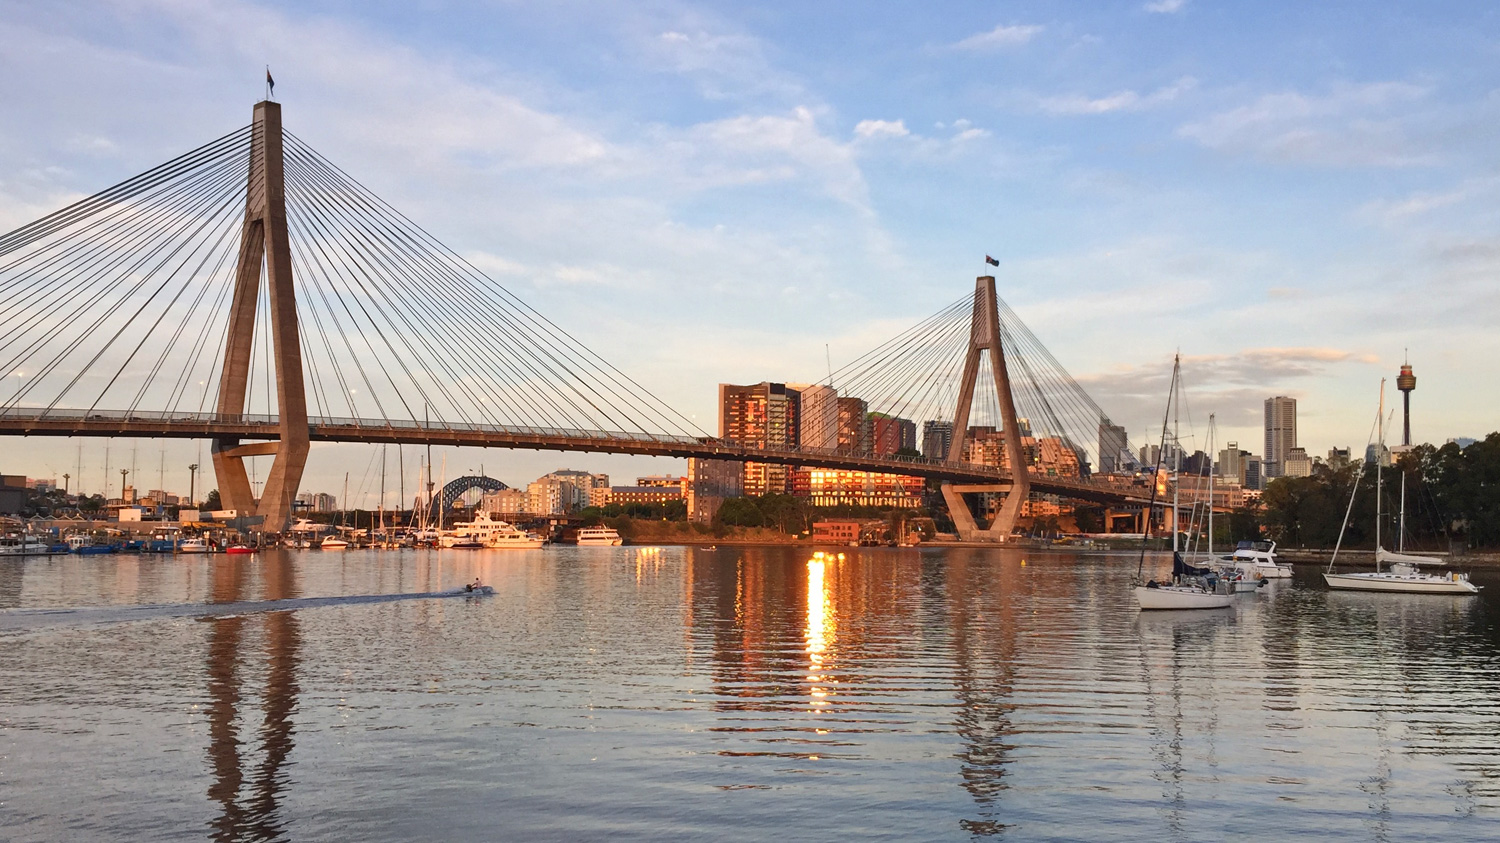 The Anzac Bridge viewed from the walk.